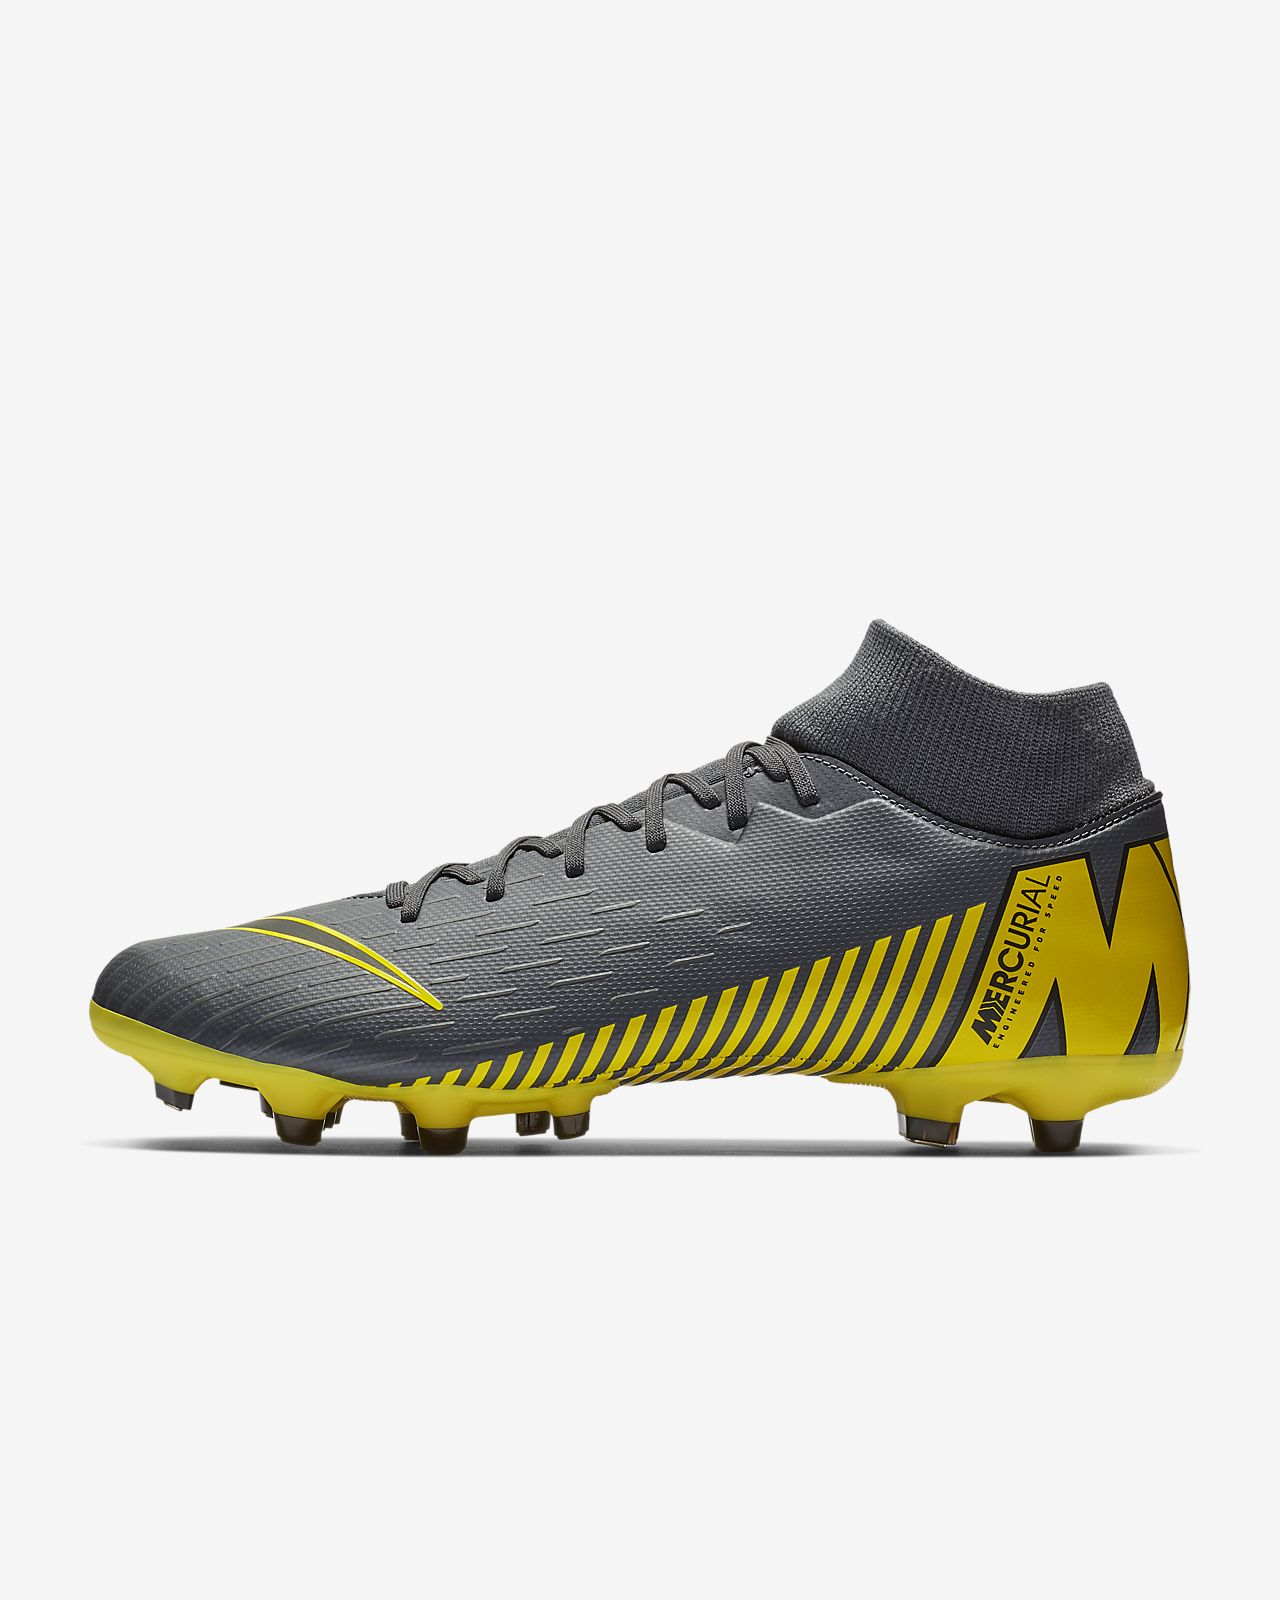 Nike Mercurial Superfly 6 Academy MG Botas de fútbol para múltiples  superficies 835735b50cdae